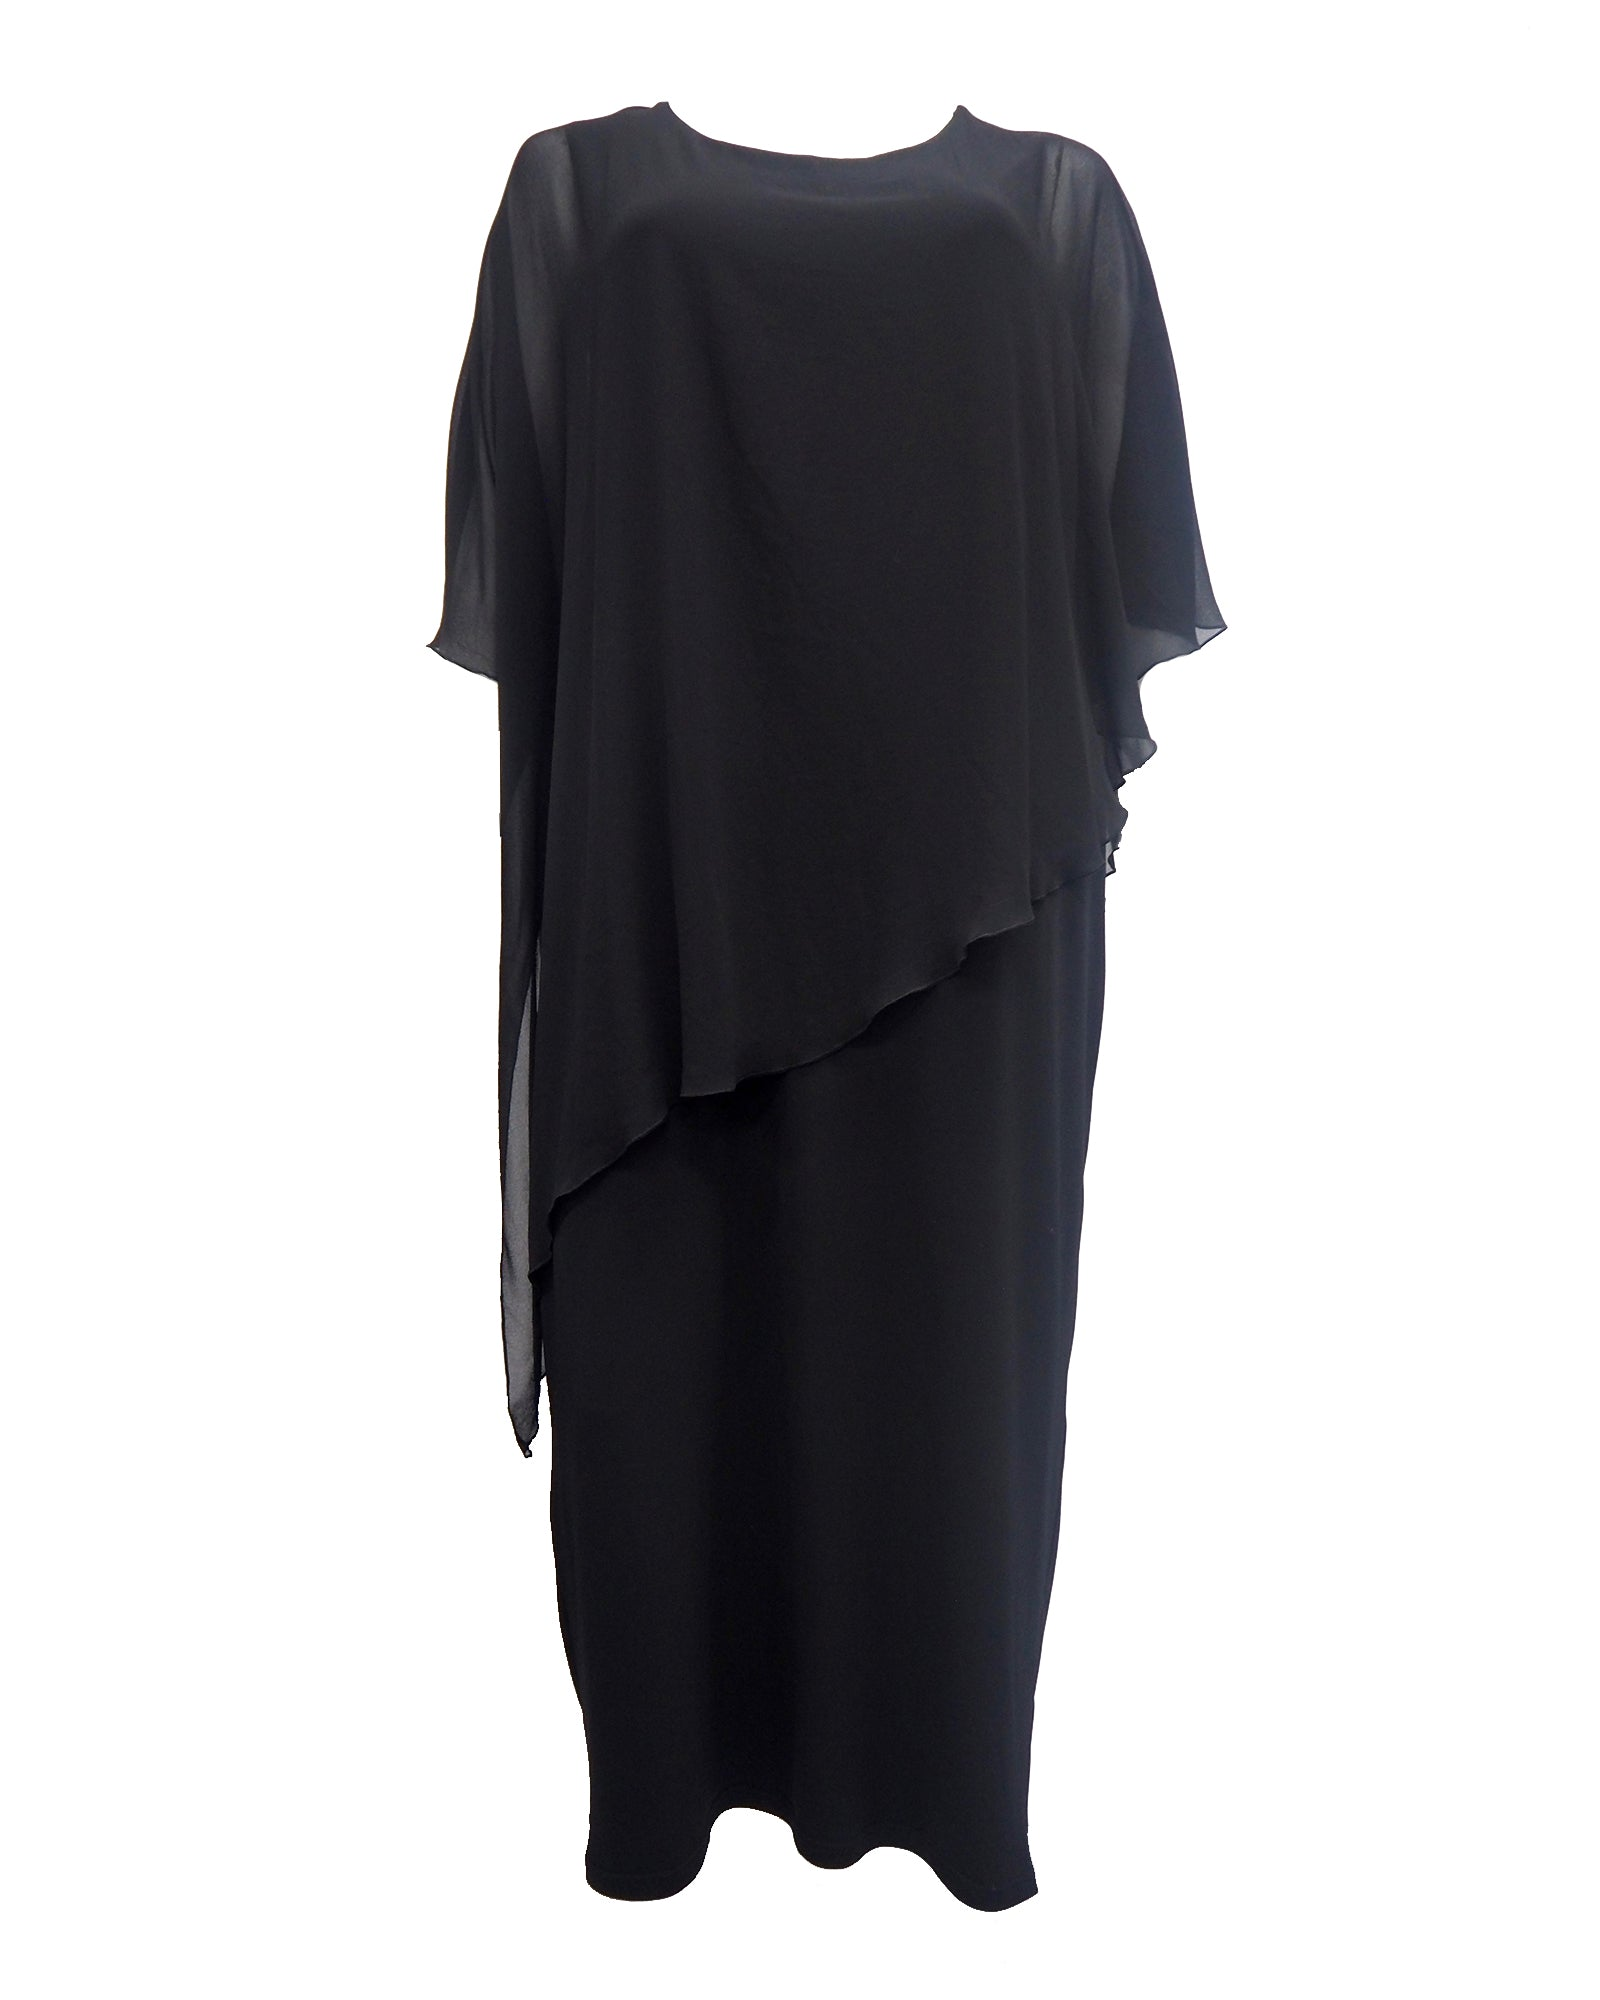 Plus size evening dress, black long dress